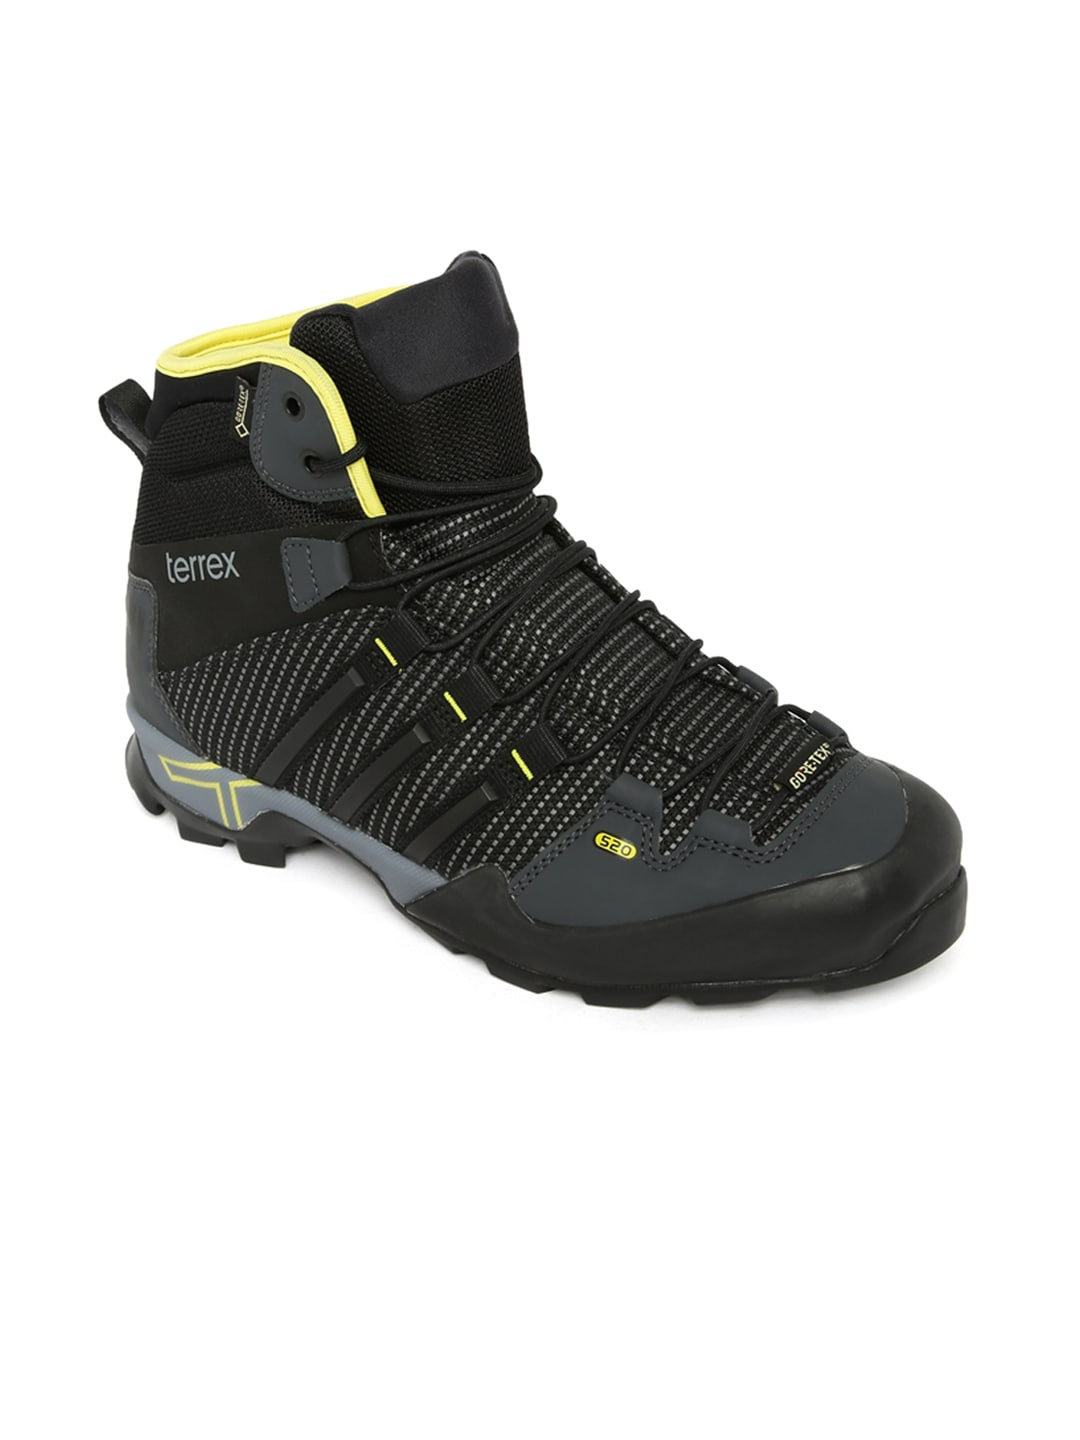 Adidas aq4094 Men Black And Grey Terrex Scope High Top Outdoor Shoes- Price  in India 26fa3d8dd